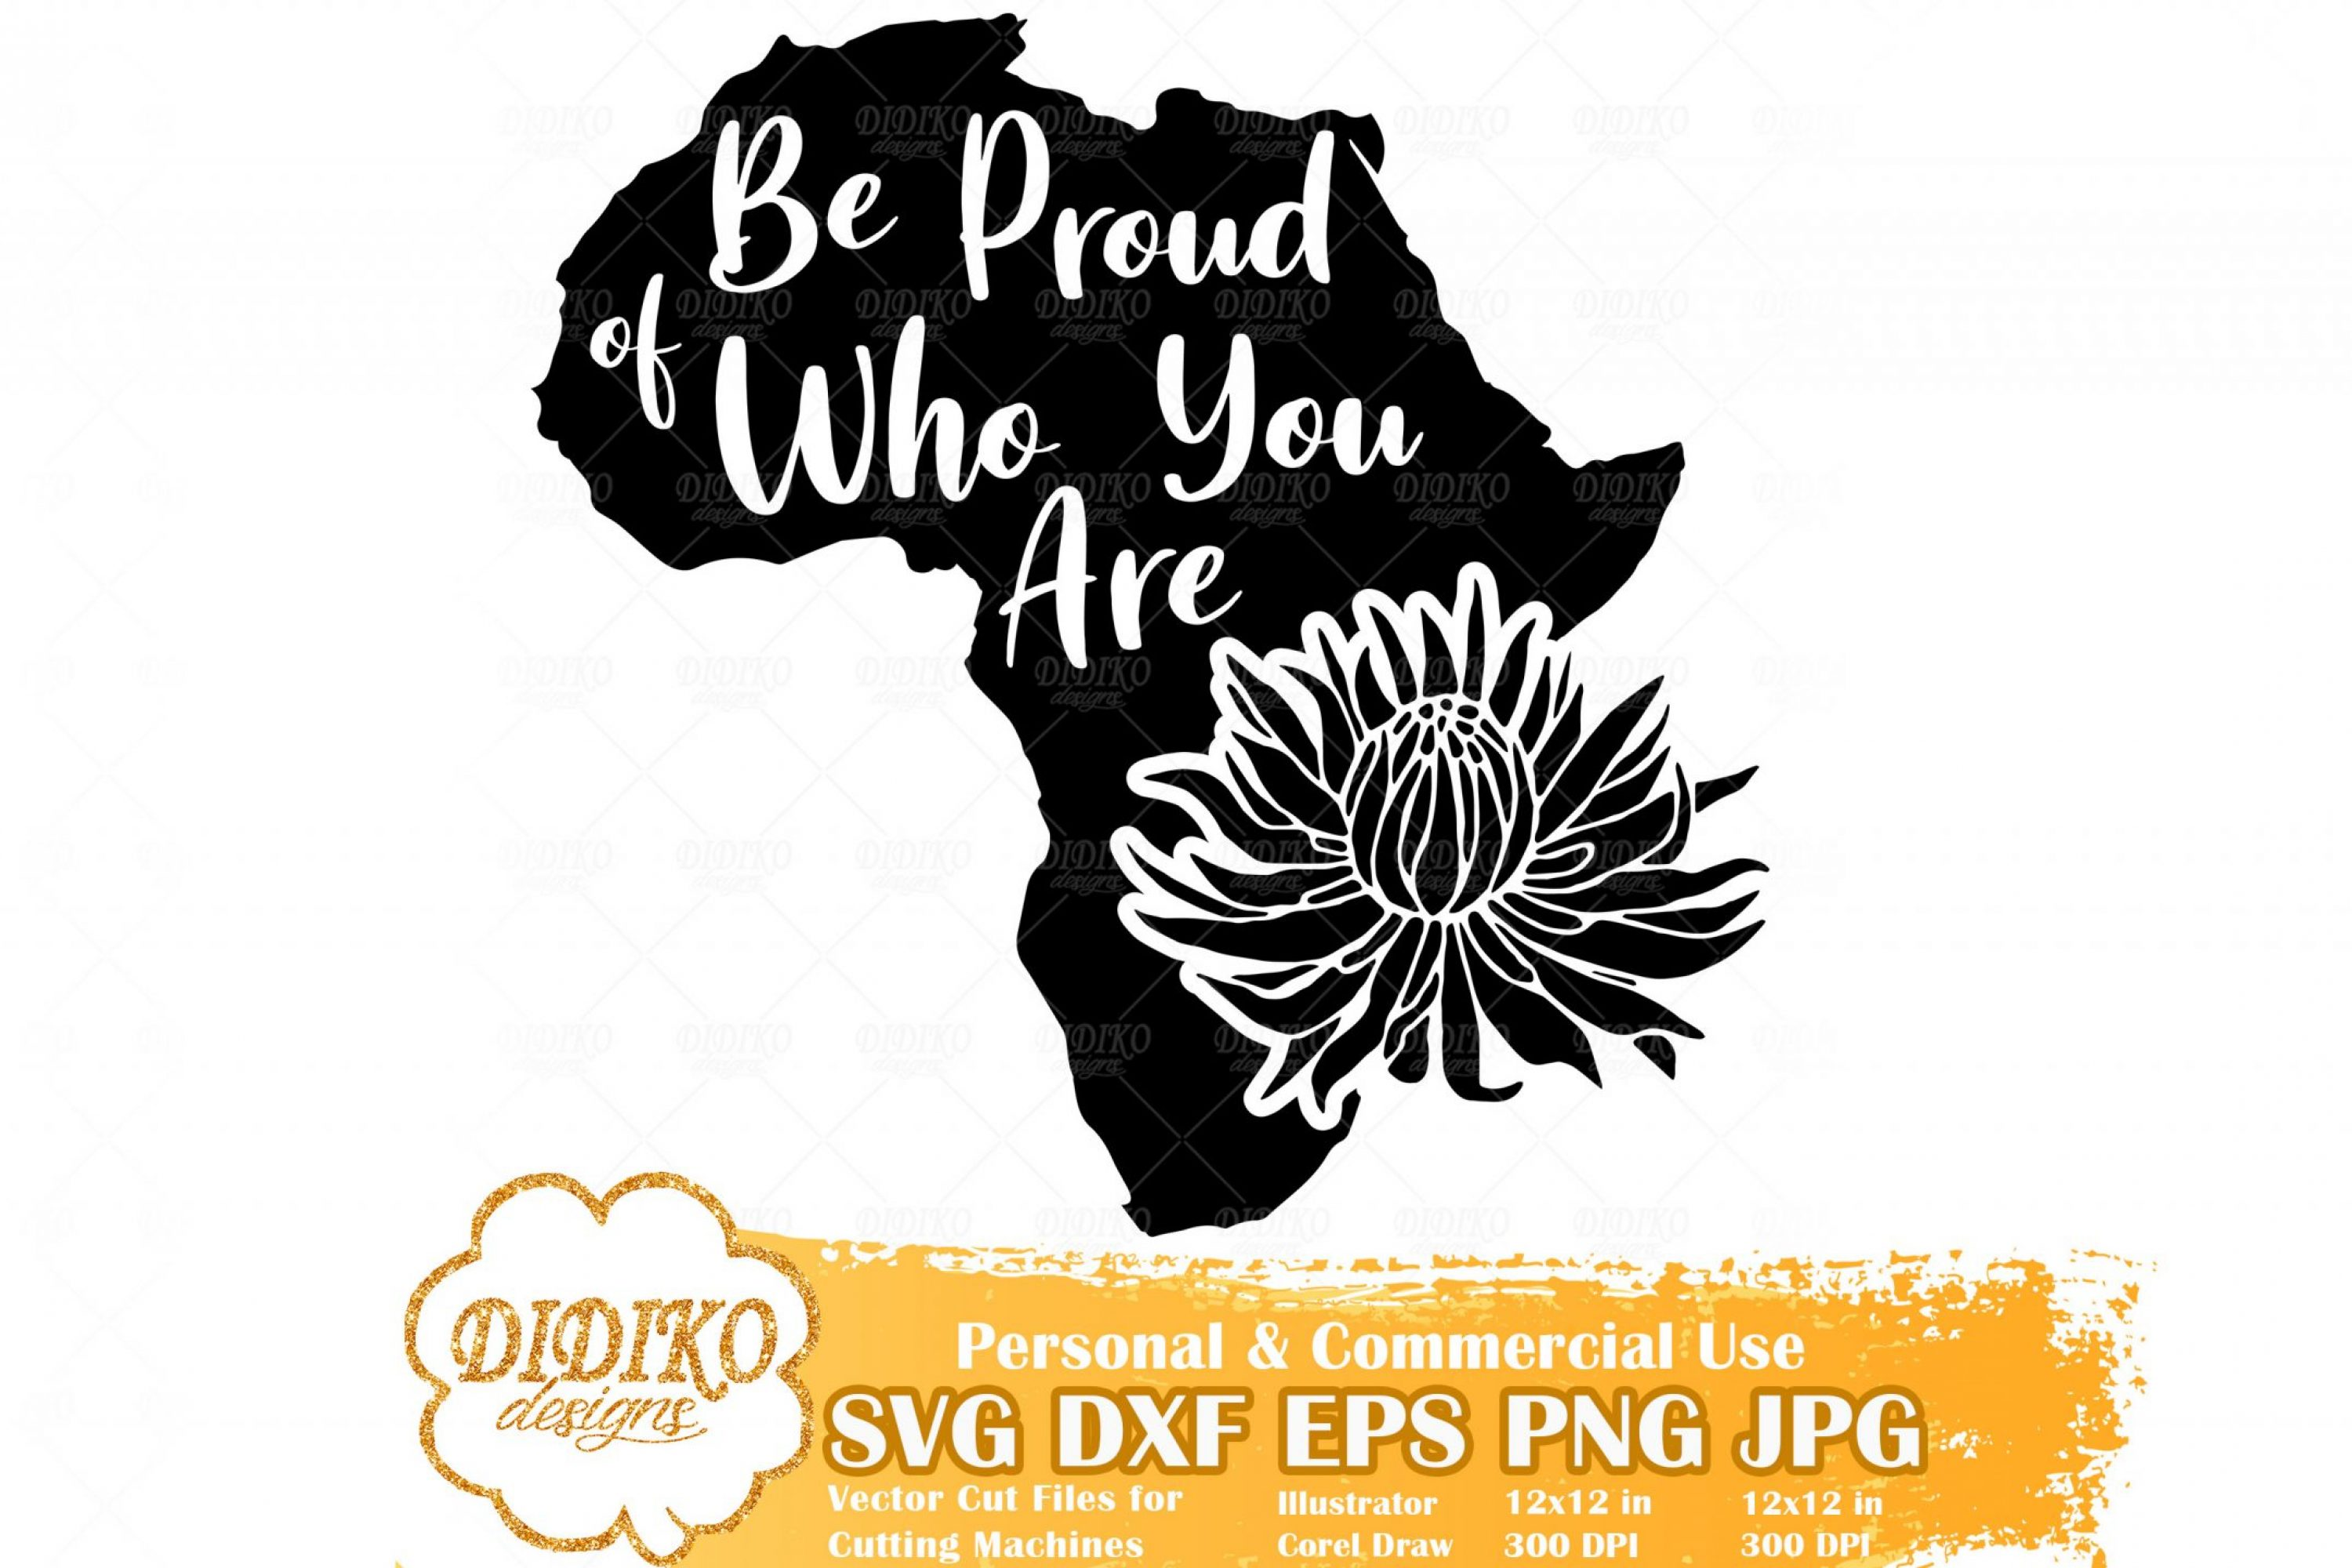 Be Proud Of Who You Are SVG, Africa SVG, Protea Svg, Black Power SVG, Black History SVG